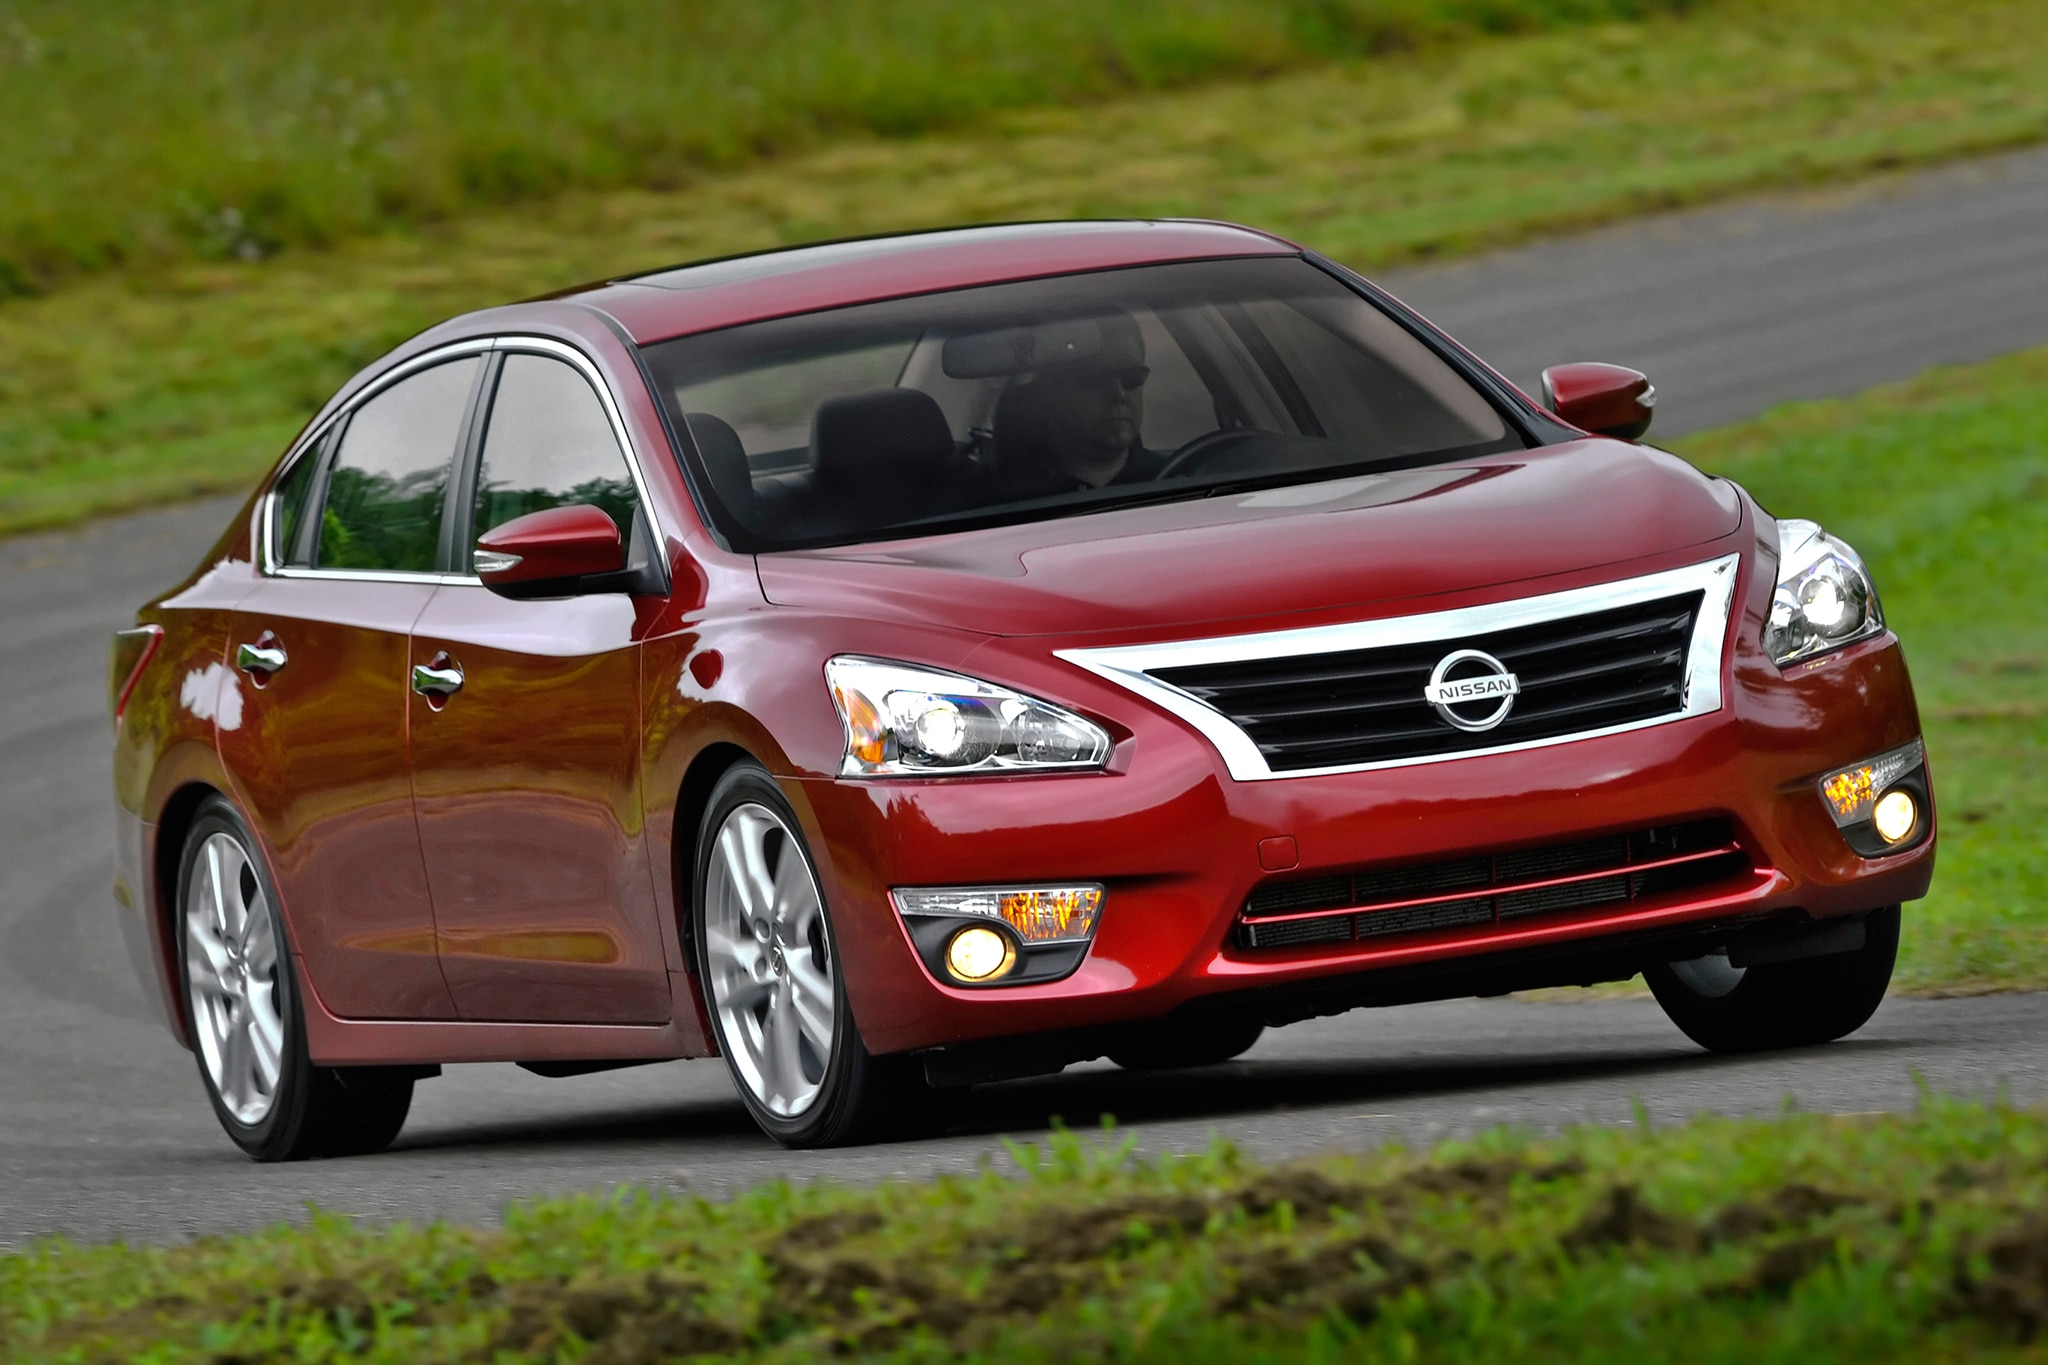 Nissan Altima 2 5 S >> 2015 Nissan Altima Starts At $23,110 - Automobile Magazine